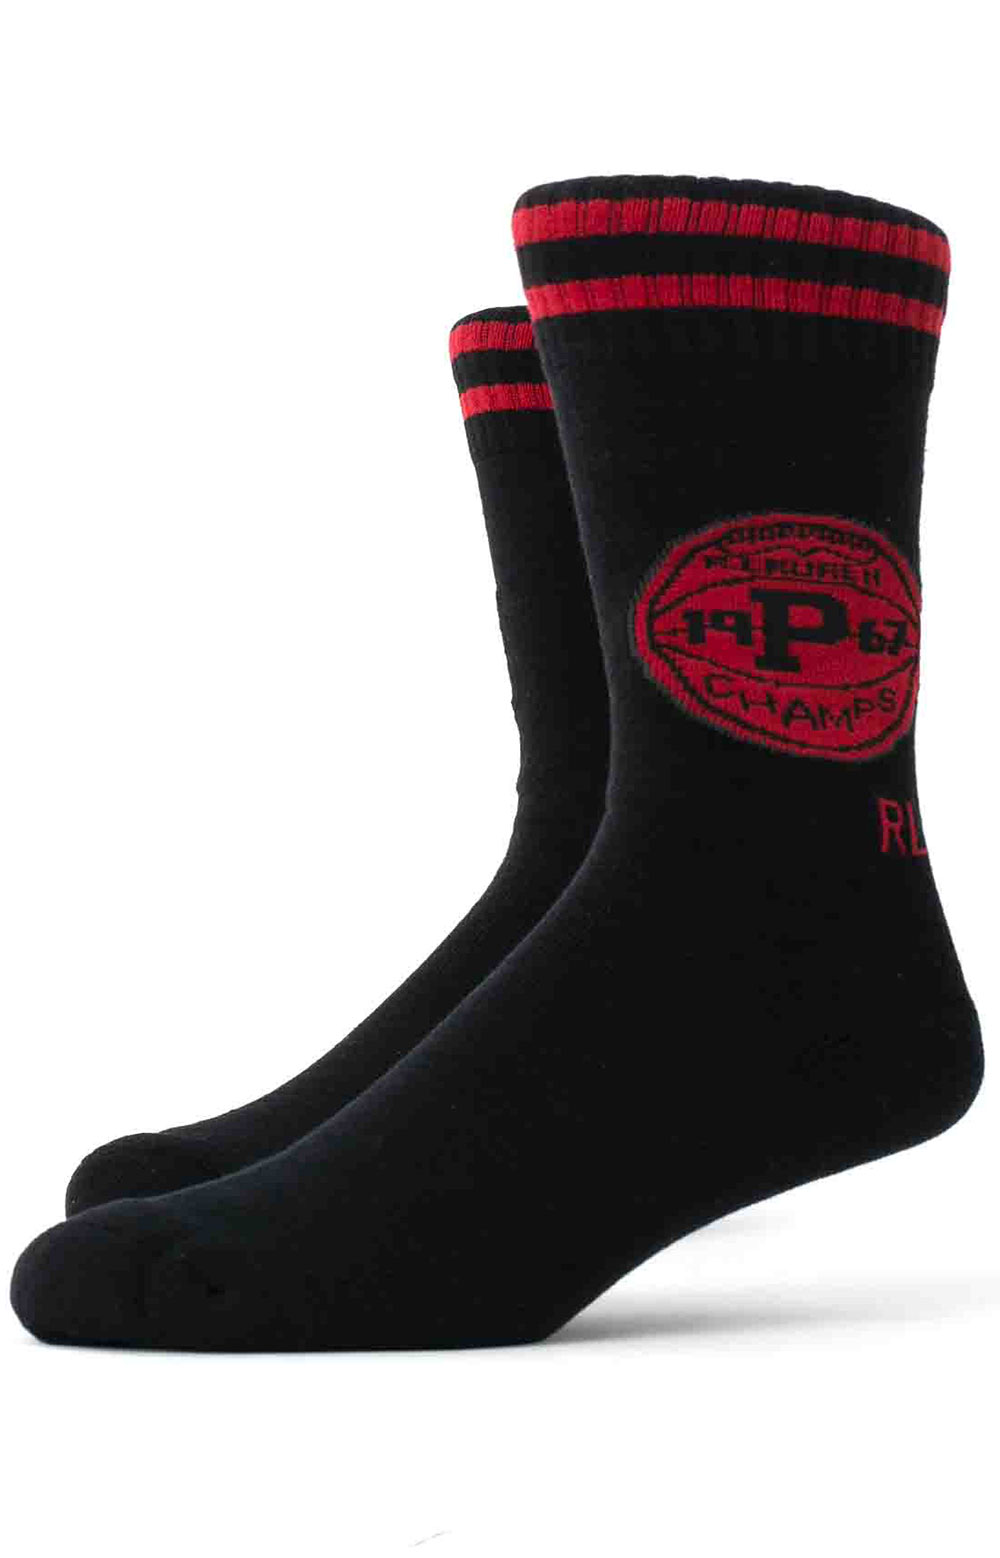 Mismatch Collegiate Tiger Crew Socks